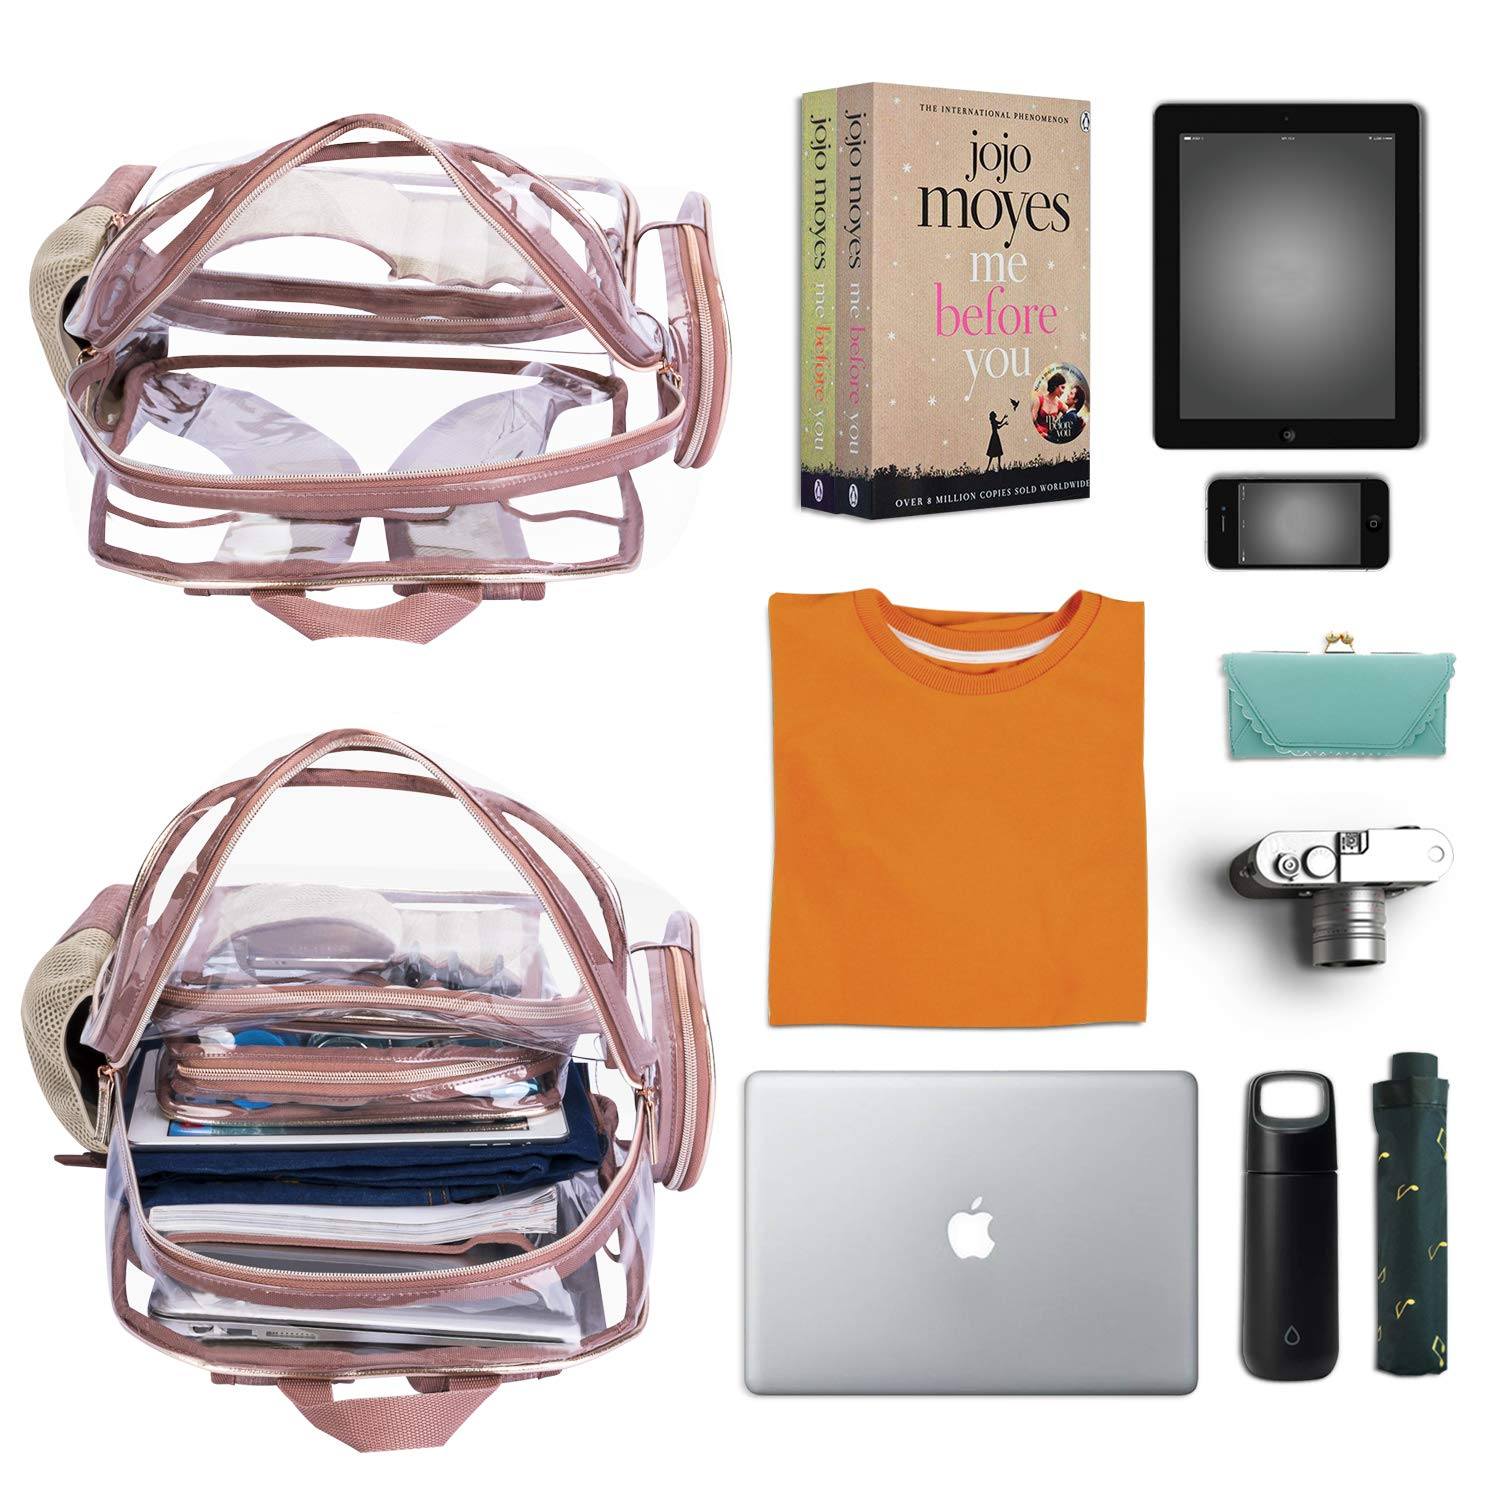 NiceEbag Clear Backpack with Cosmetic Bag & Case, Clear Transparent PVC Multi-pockets School Backpack Outdoor Bookbag Travel Makeup Quart Luggage Pouch Organizer Fit 15.6 Inch Laptop (Rose Gold) by NiceEbag (Image #3)